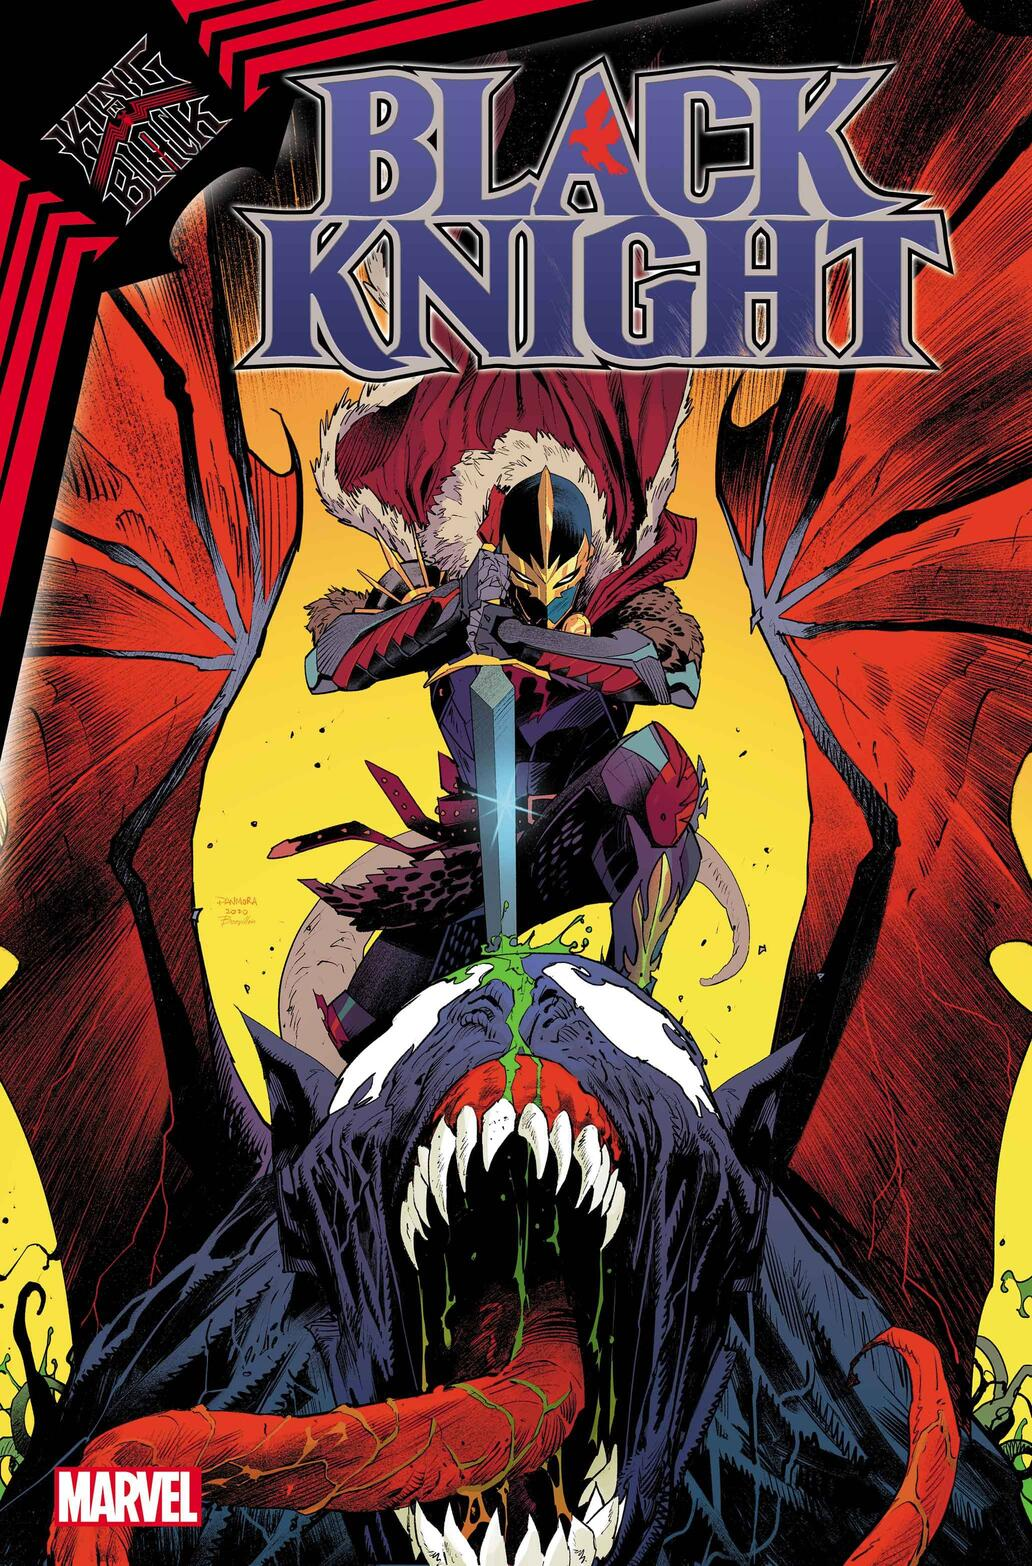 King in Black: Black Knight